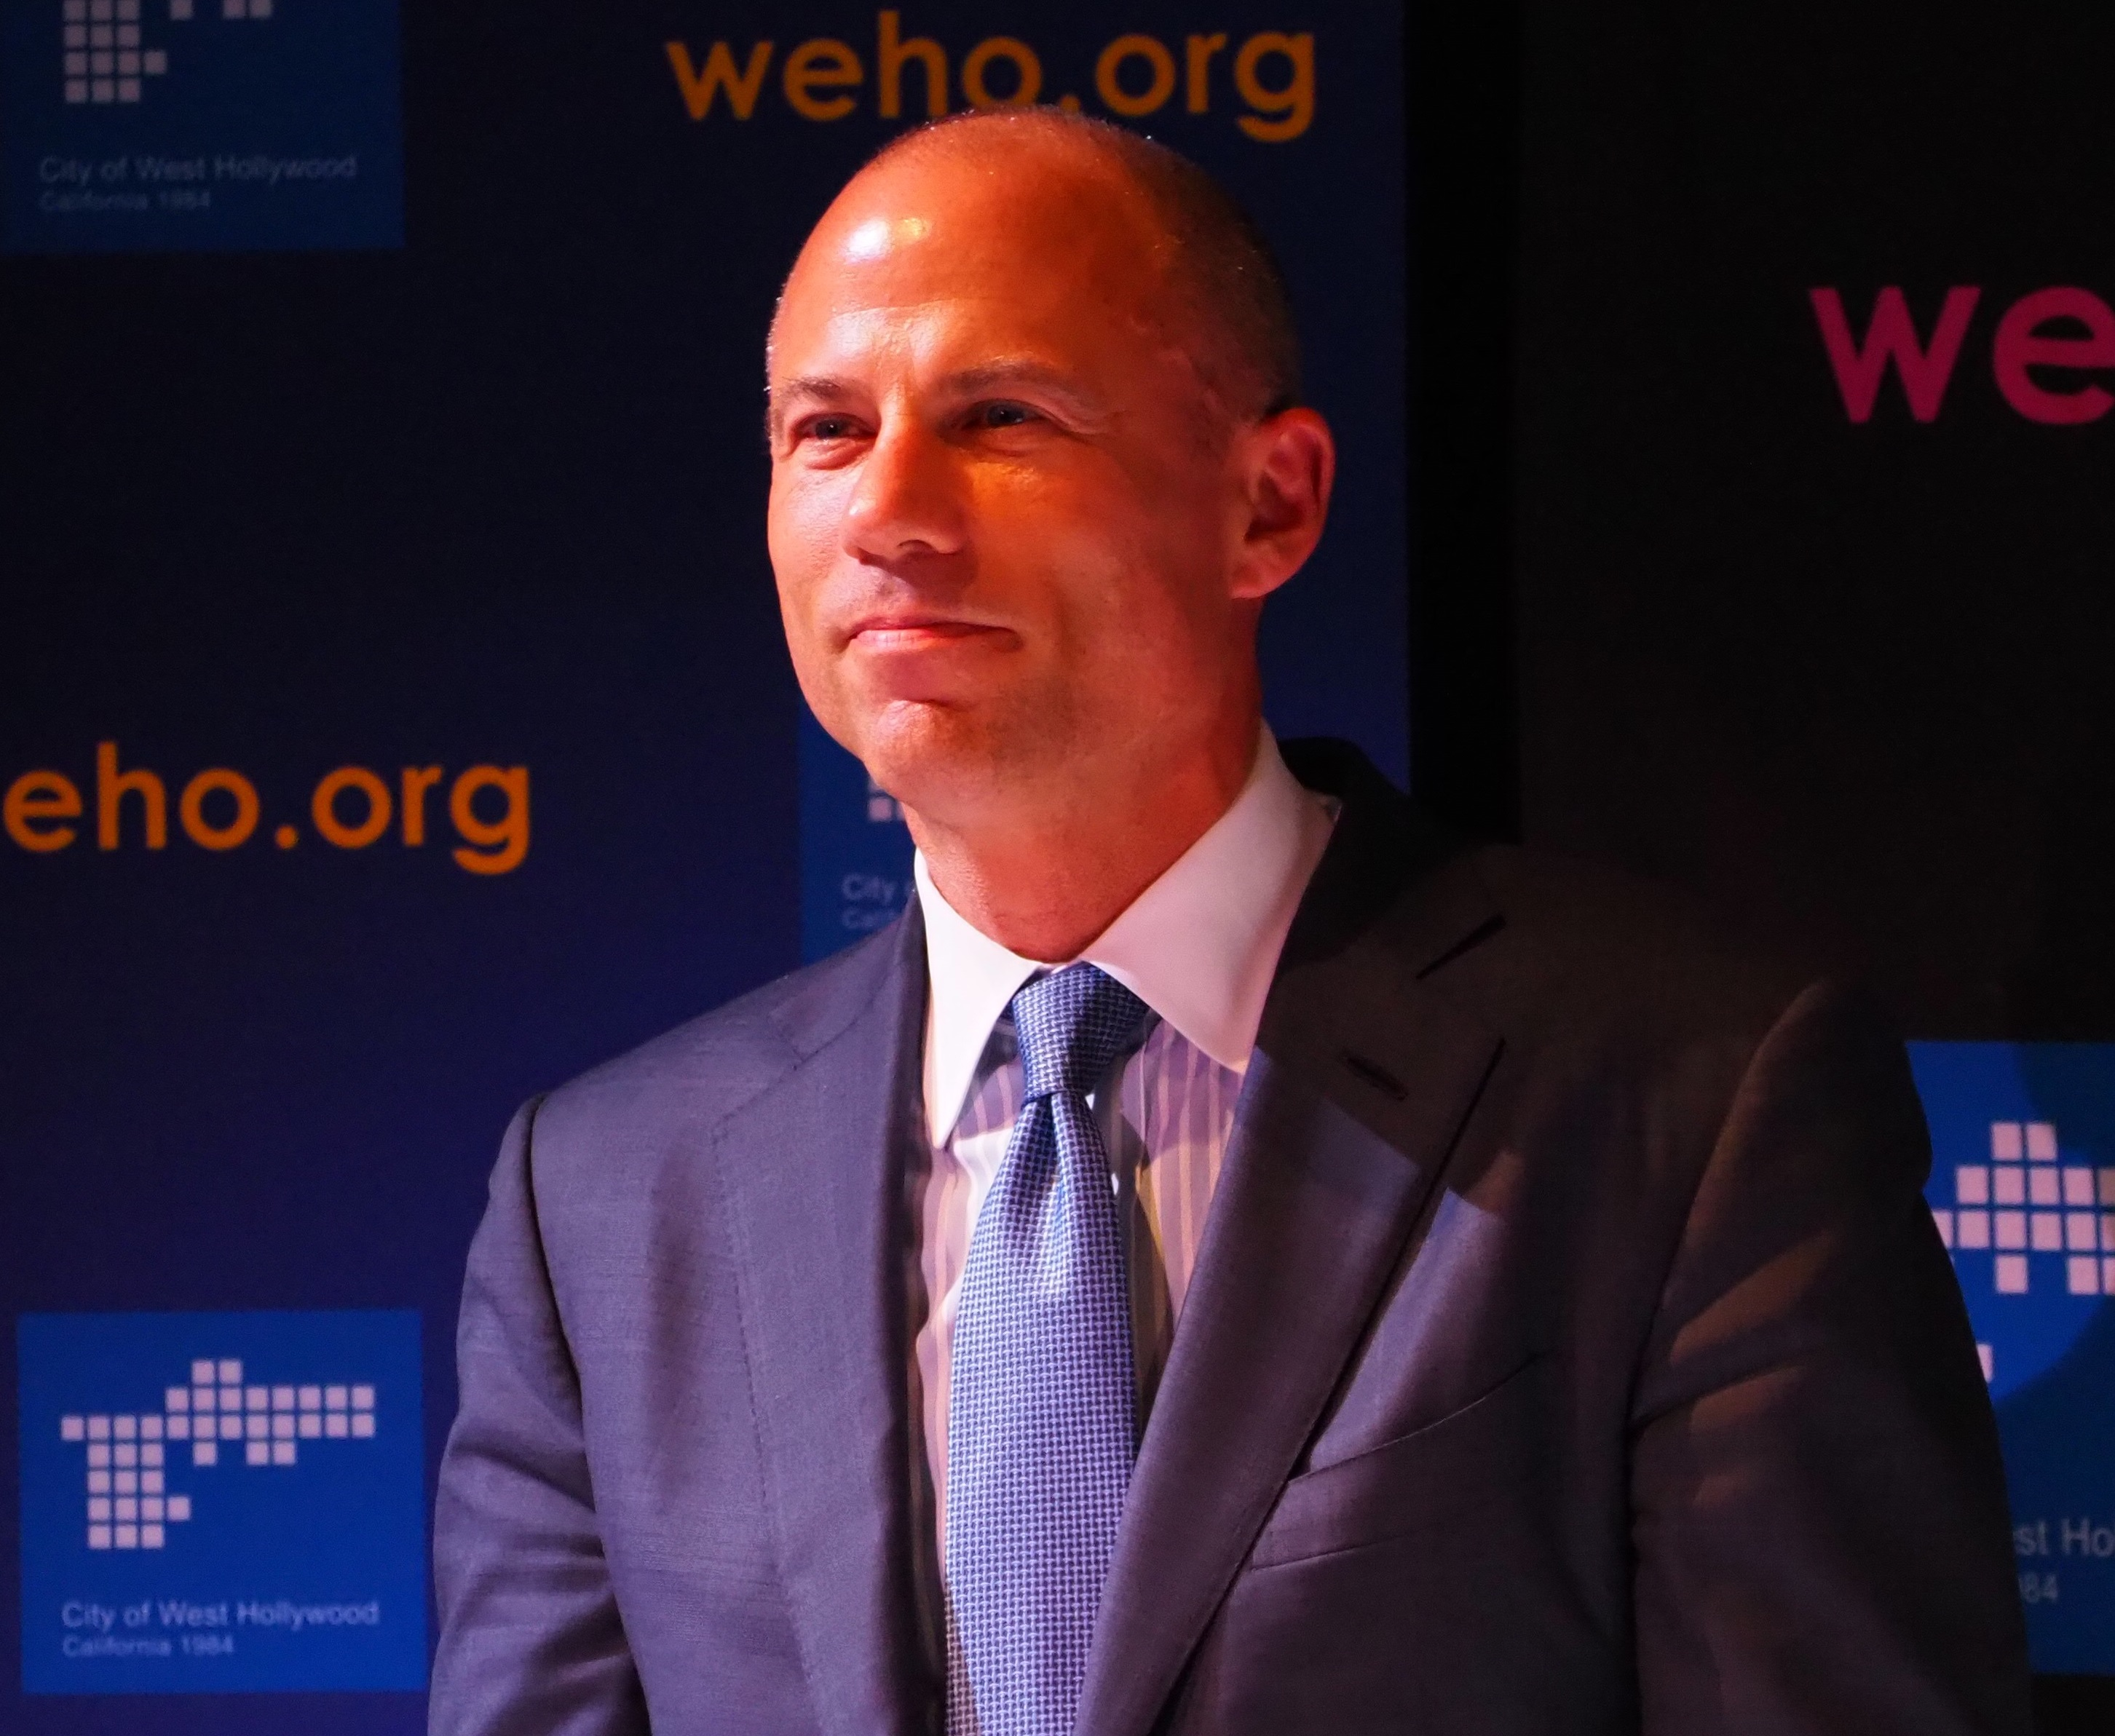 Michael Avenatti charged with attempting to extort Nike